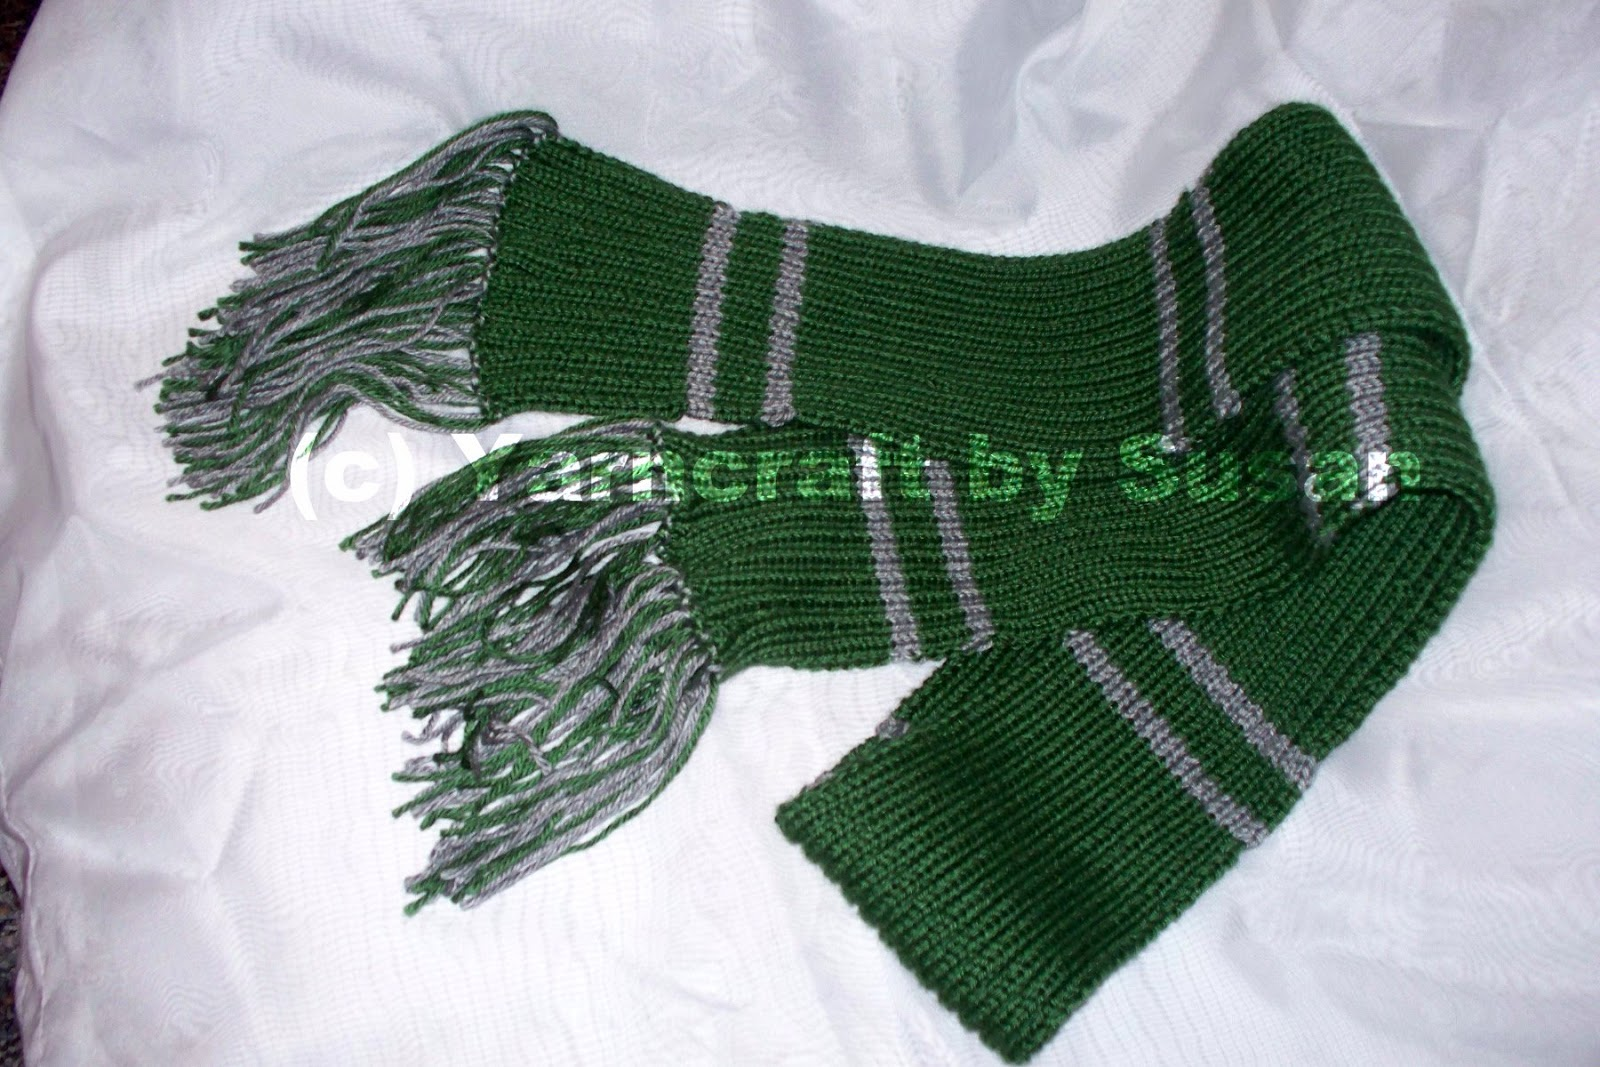 Yarncraft by Susan: Slytherin House scarf